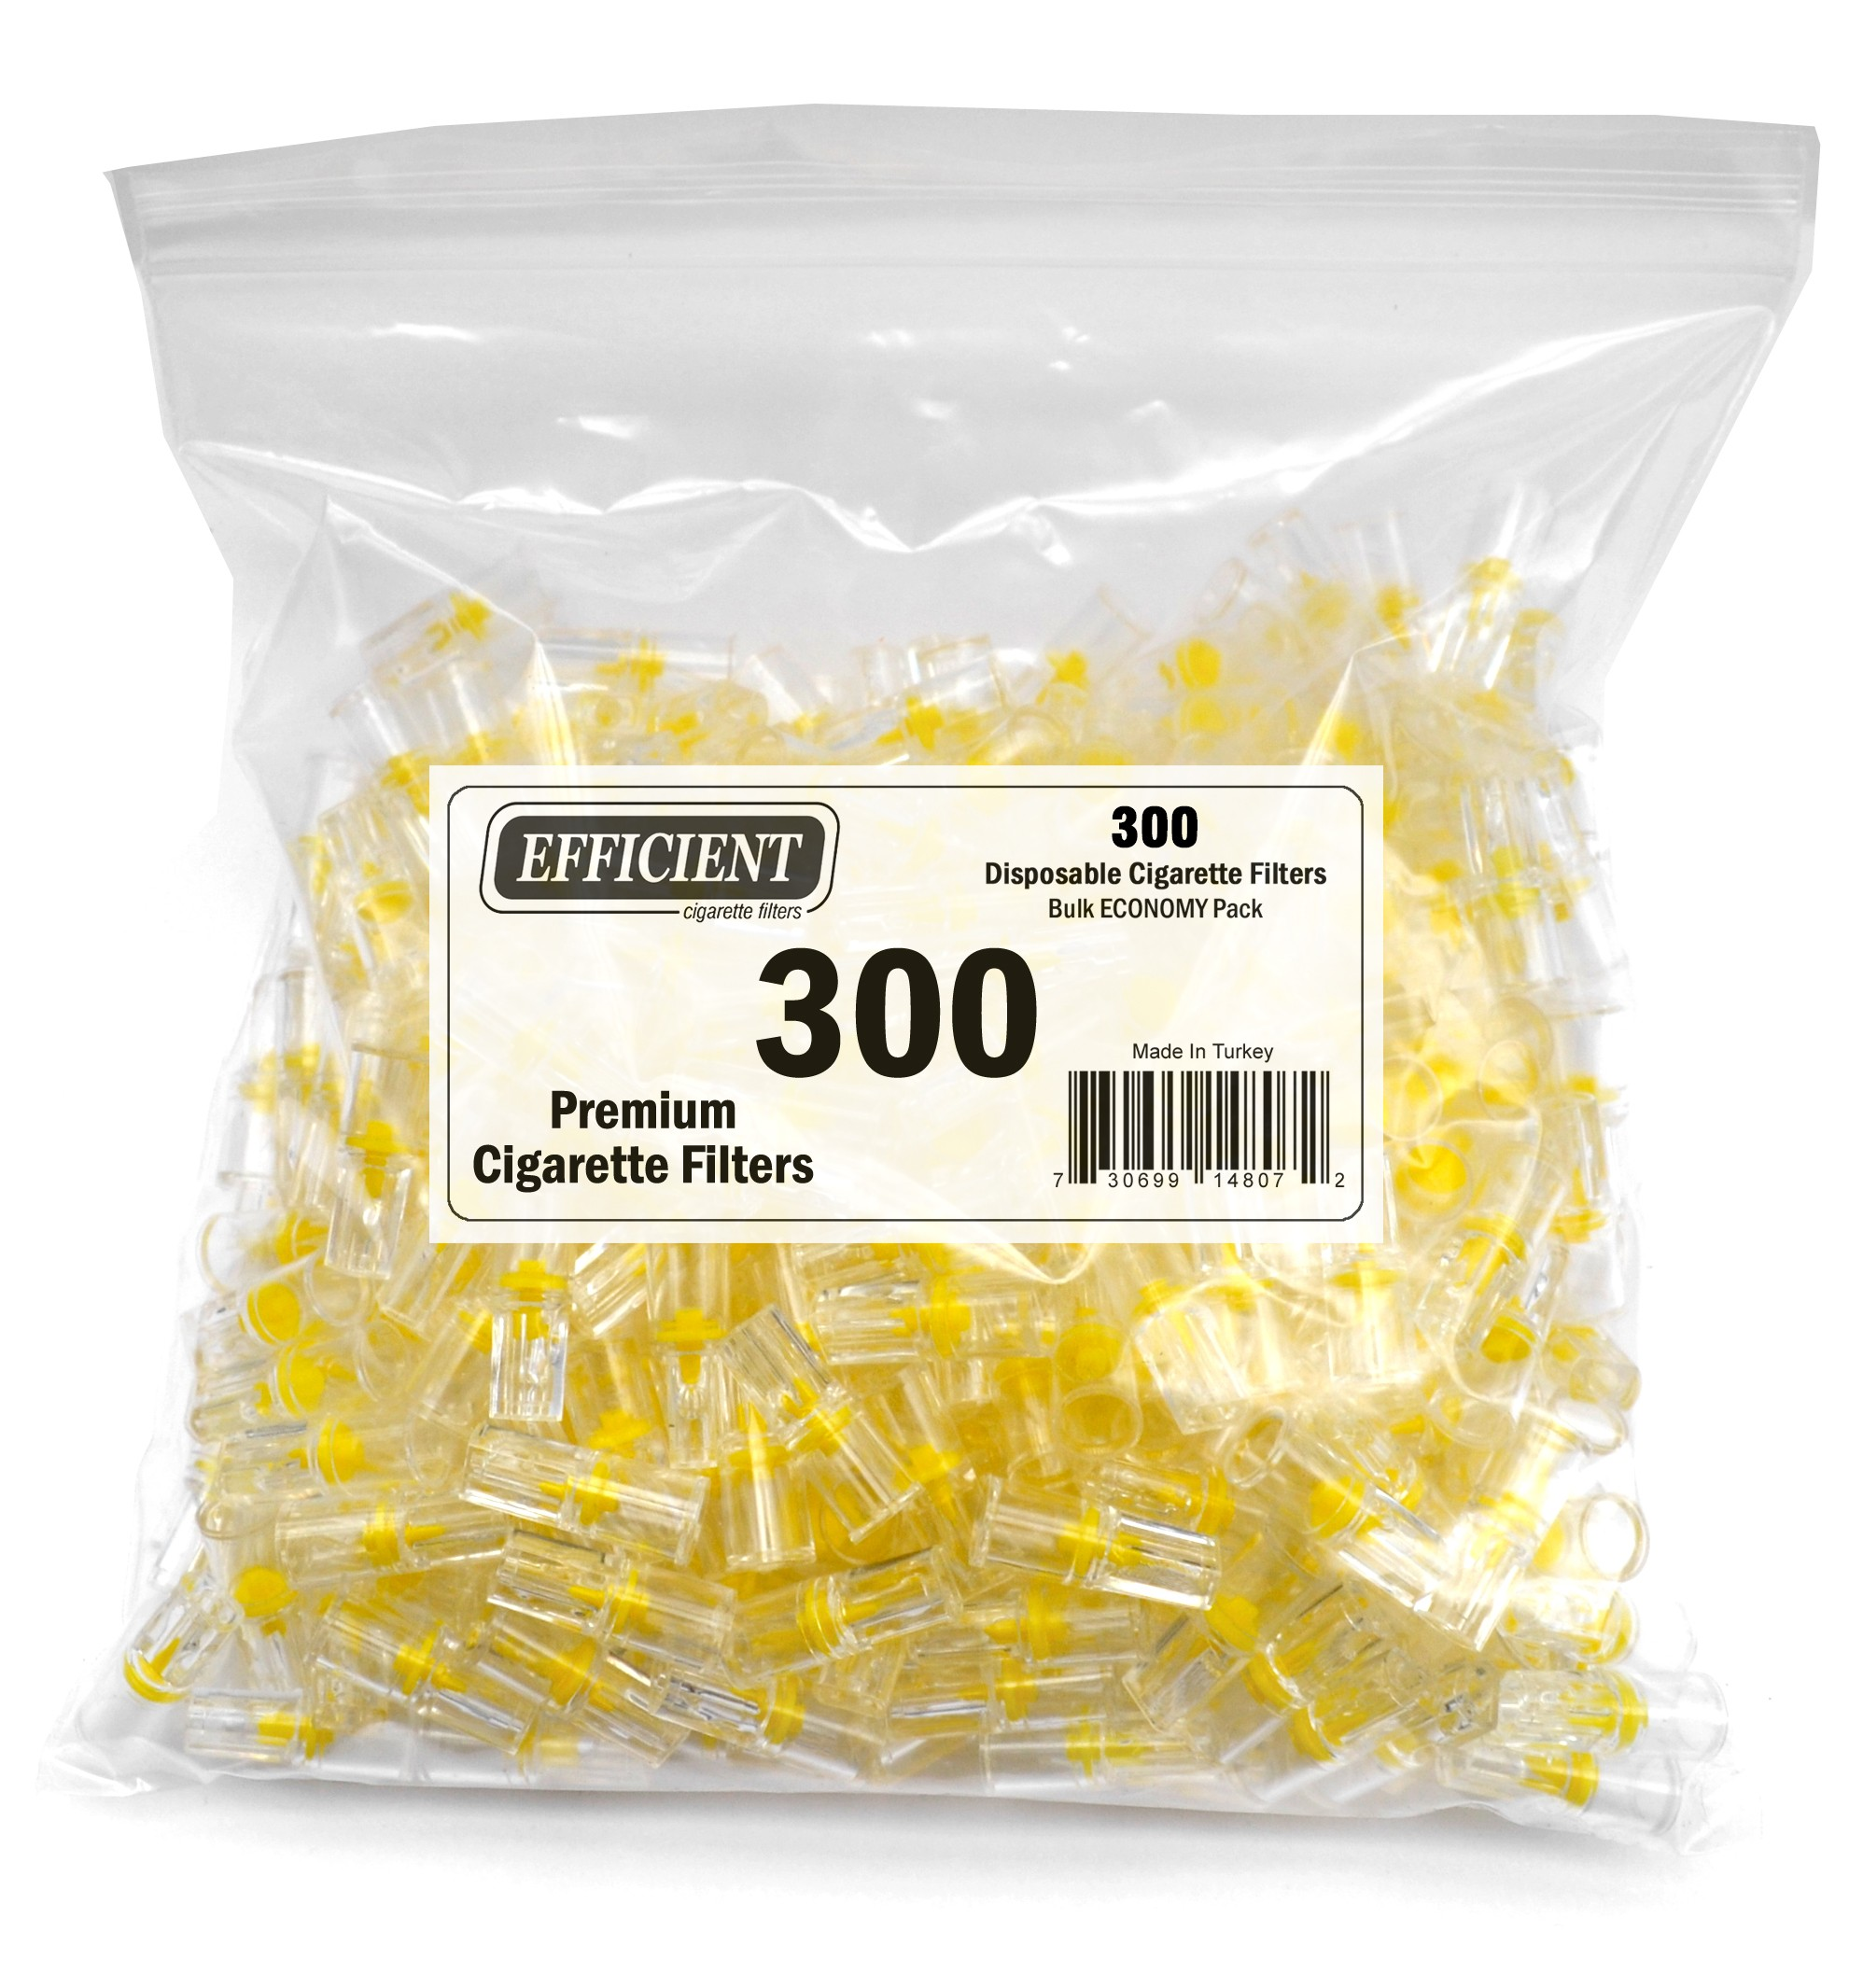 Efficient Disposable Cigarette Filters - Bulk Economy Pack (300 Per Pack)